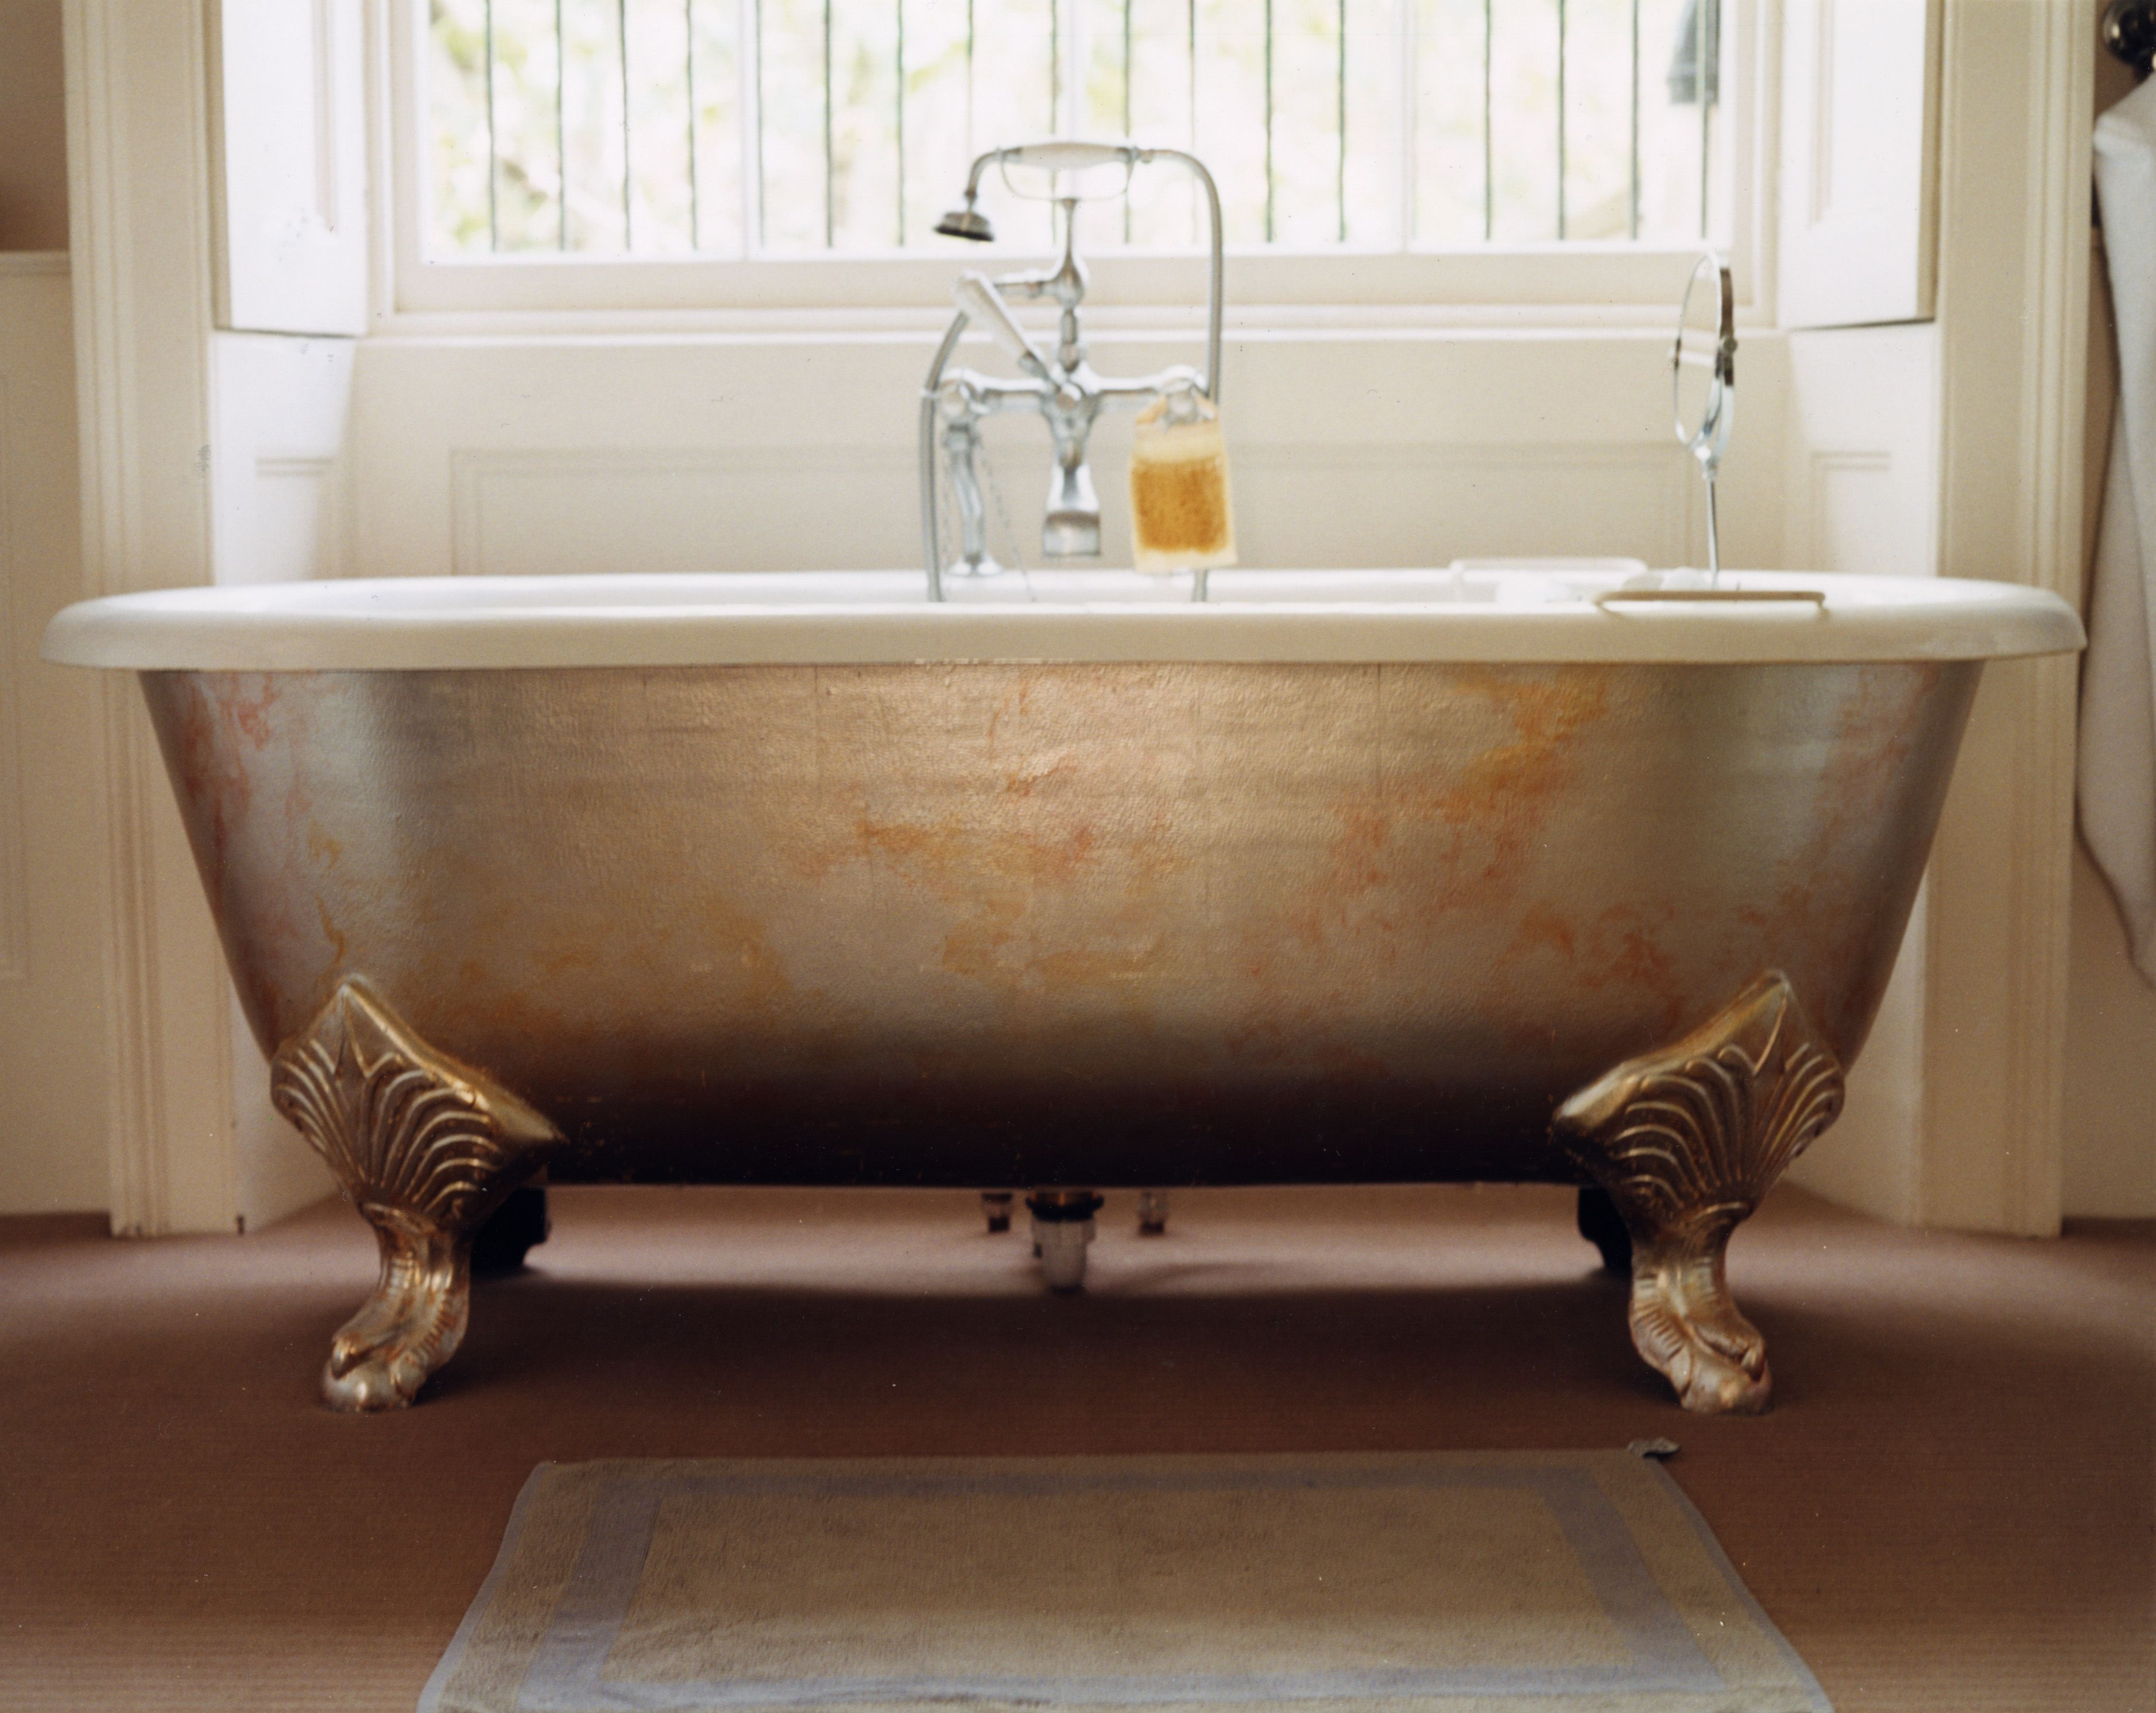 A Distressed Silver Leaf Roll Top Bath With Images Roll Top